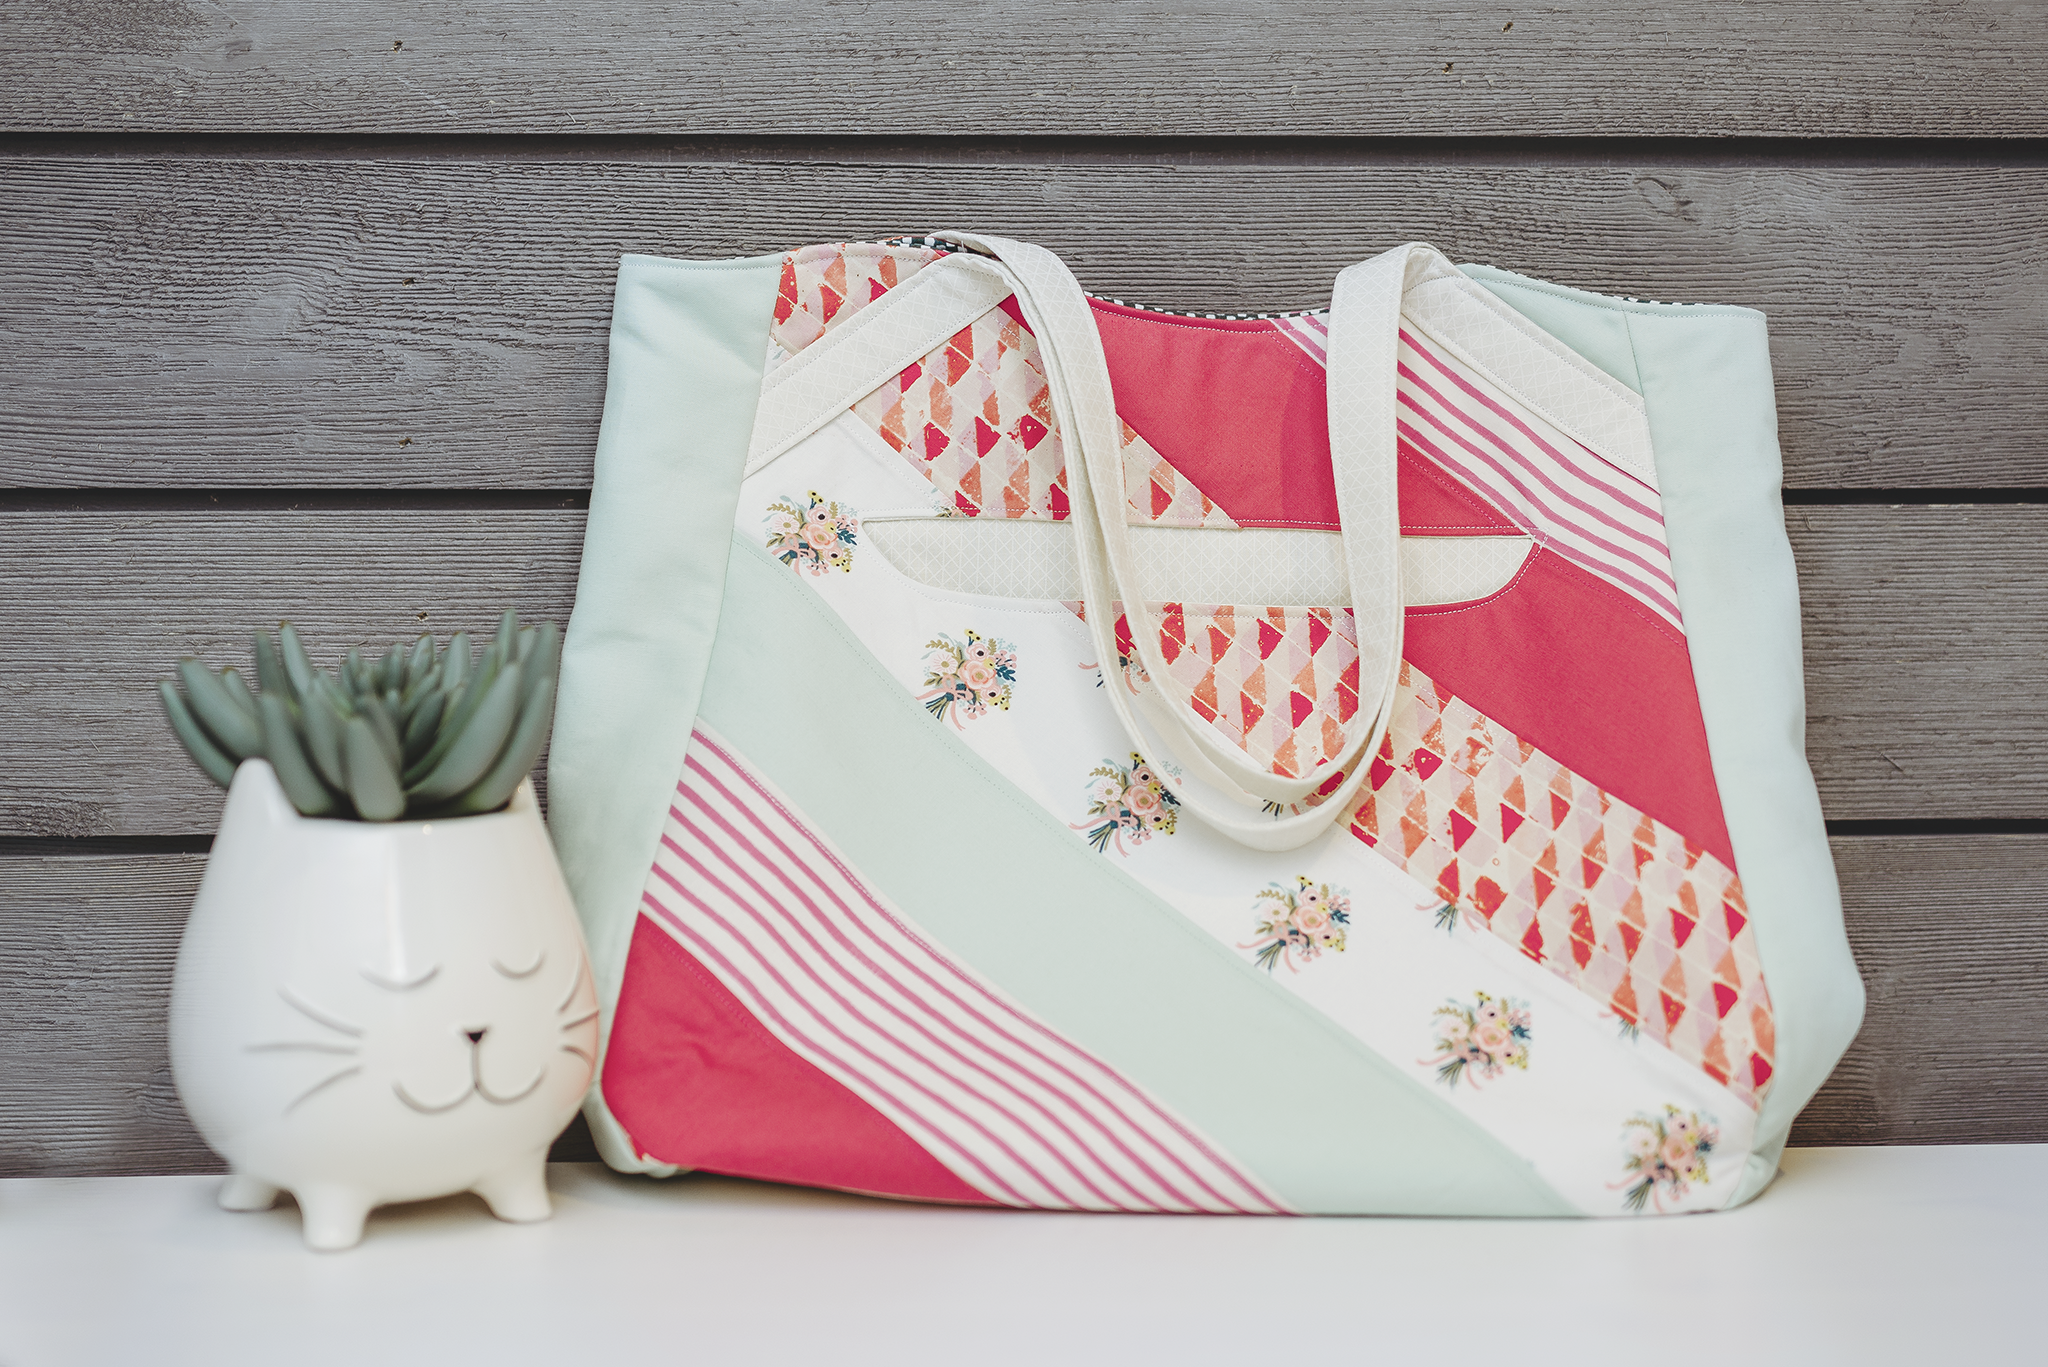 finished image of tote bag